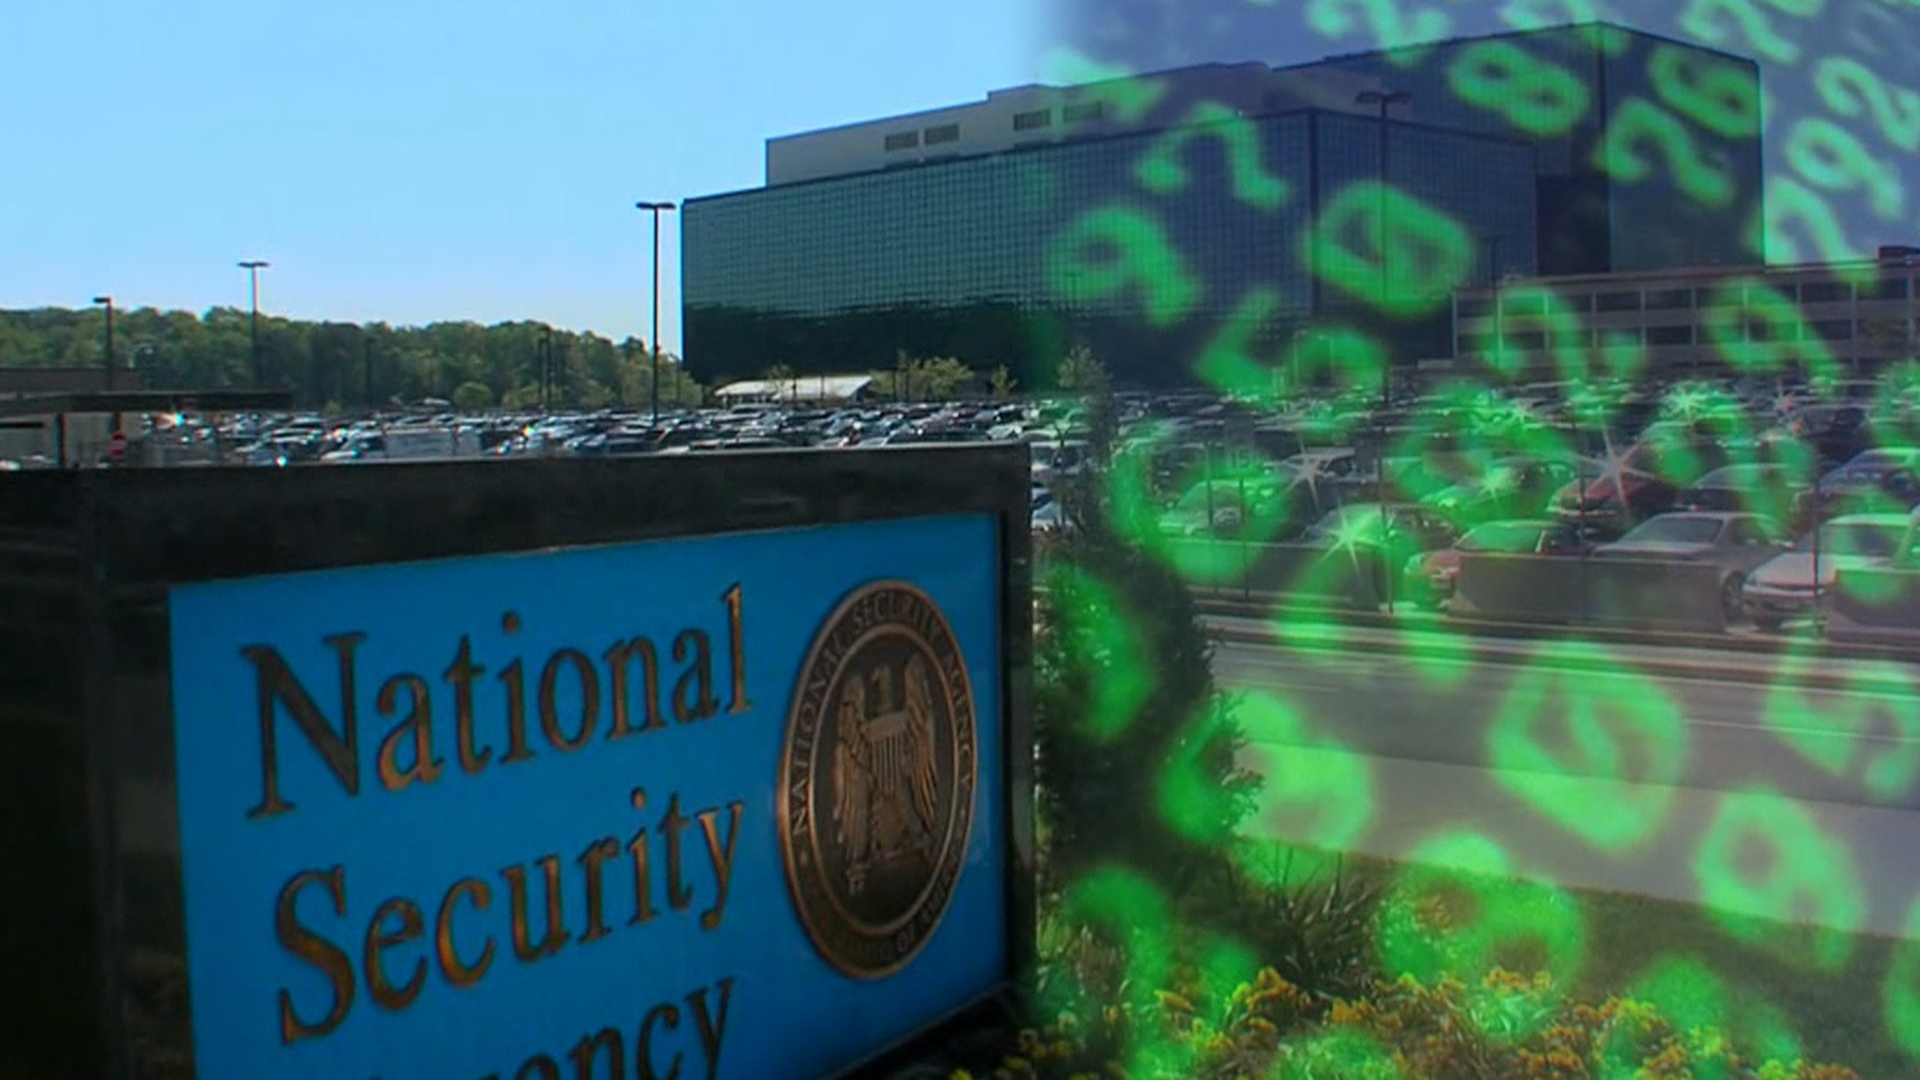 Nsa collects data on us citizens social connections nsa has been exploiting americans social connections fandeluxe Choice Image